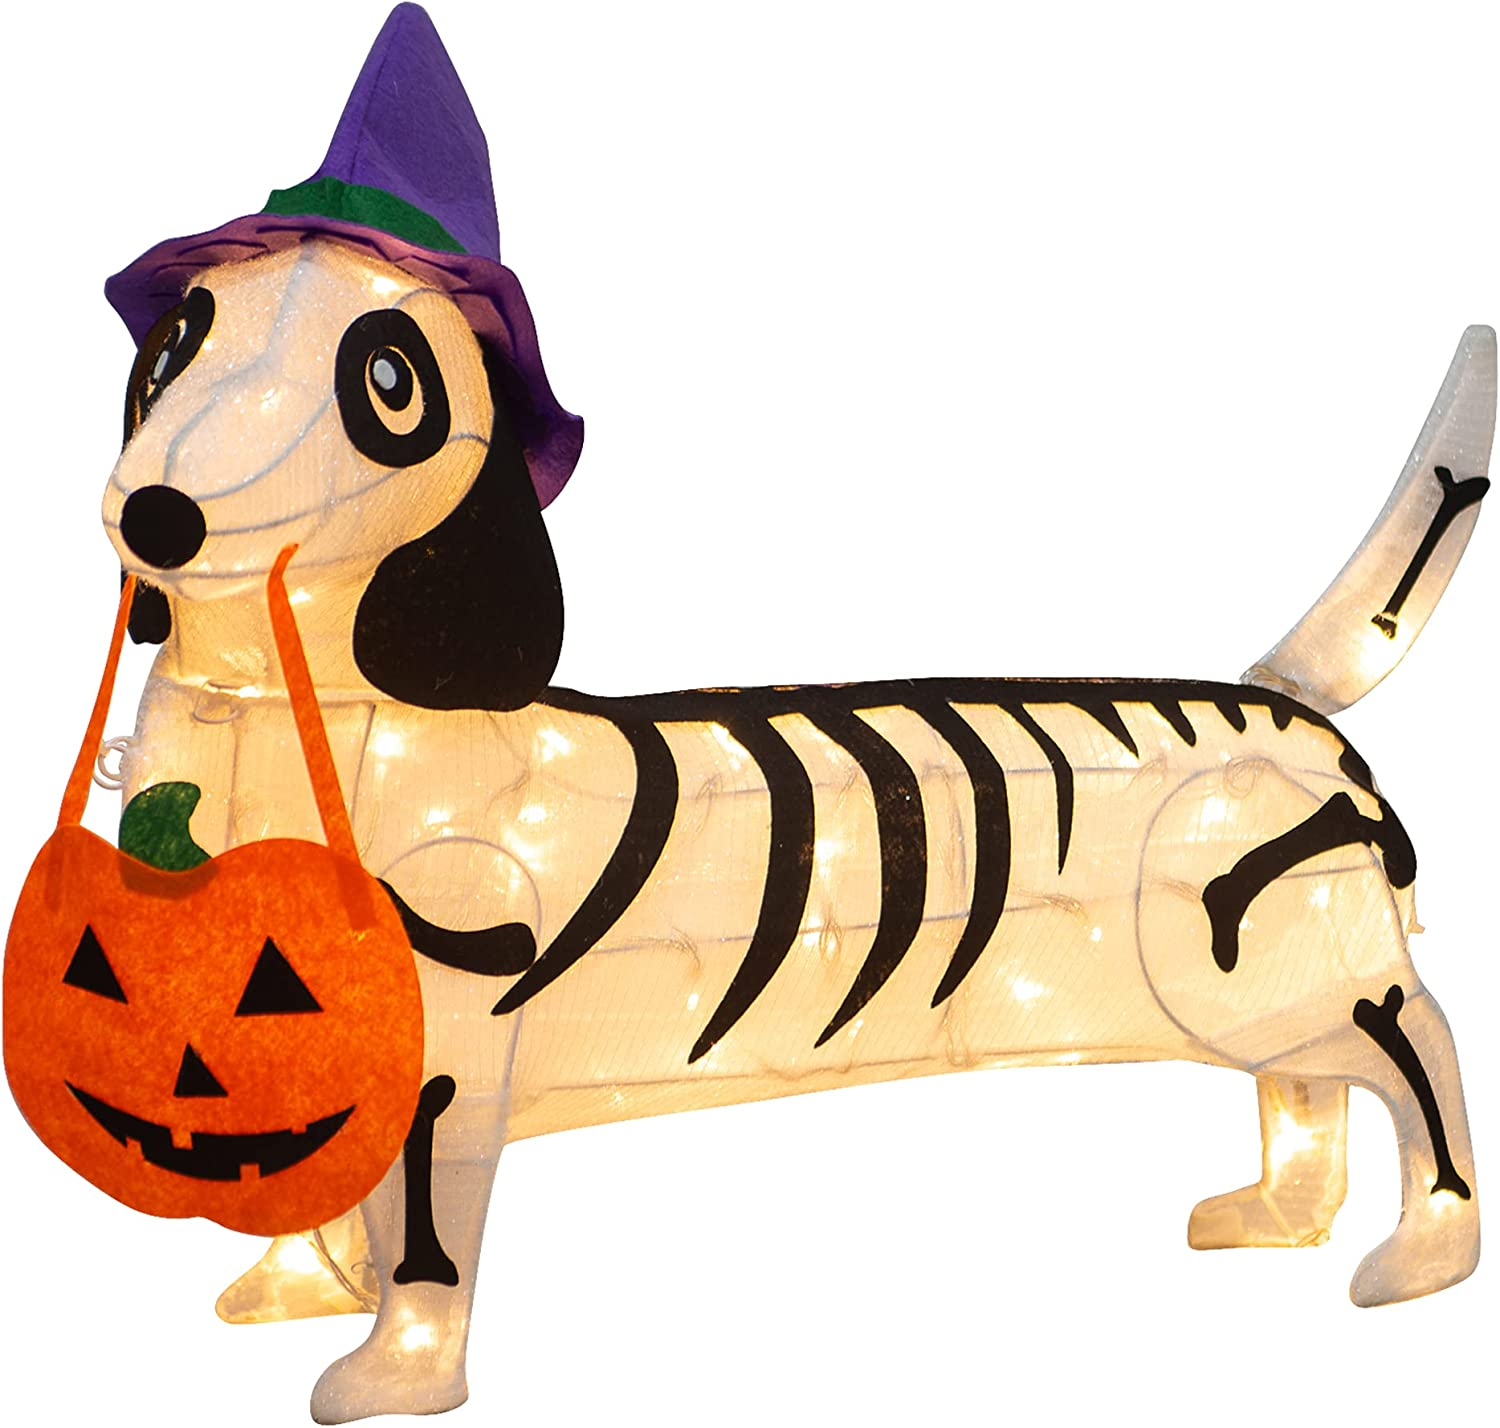 KITBONIS Pre-lit 25.5 Inches Long Halloween Skeleton Dog with Witch Hats with Twinkle Lights Indoor Outdoor Decorations Halloween Decorations Lights for Home Garden Party Yard Decor